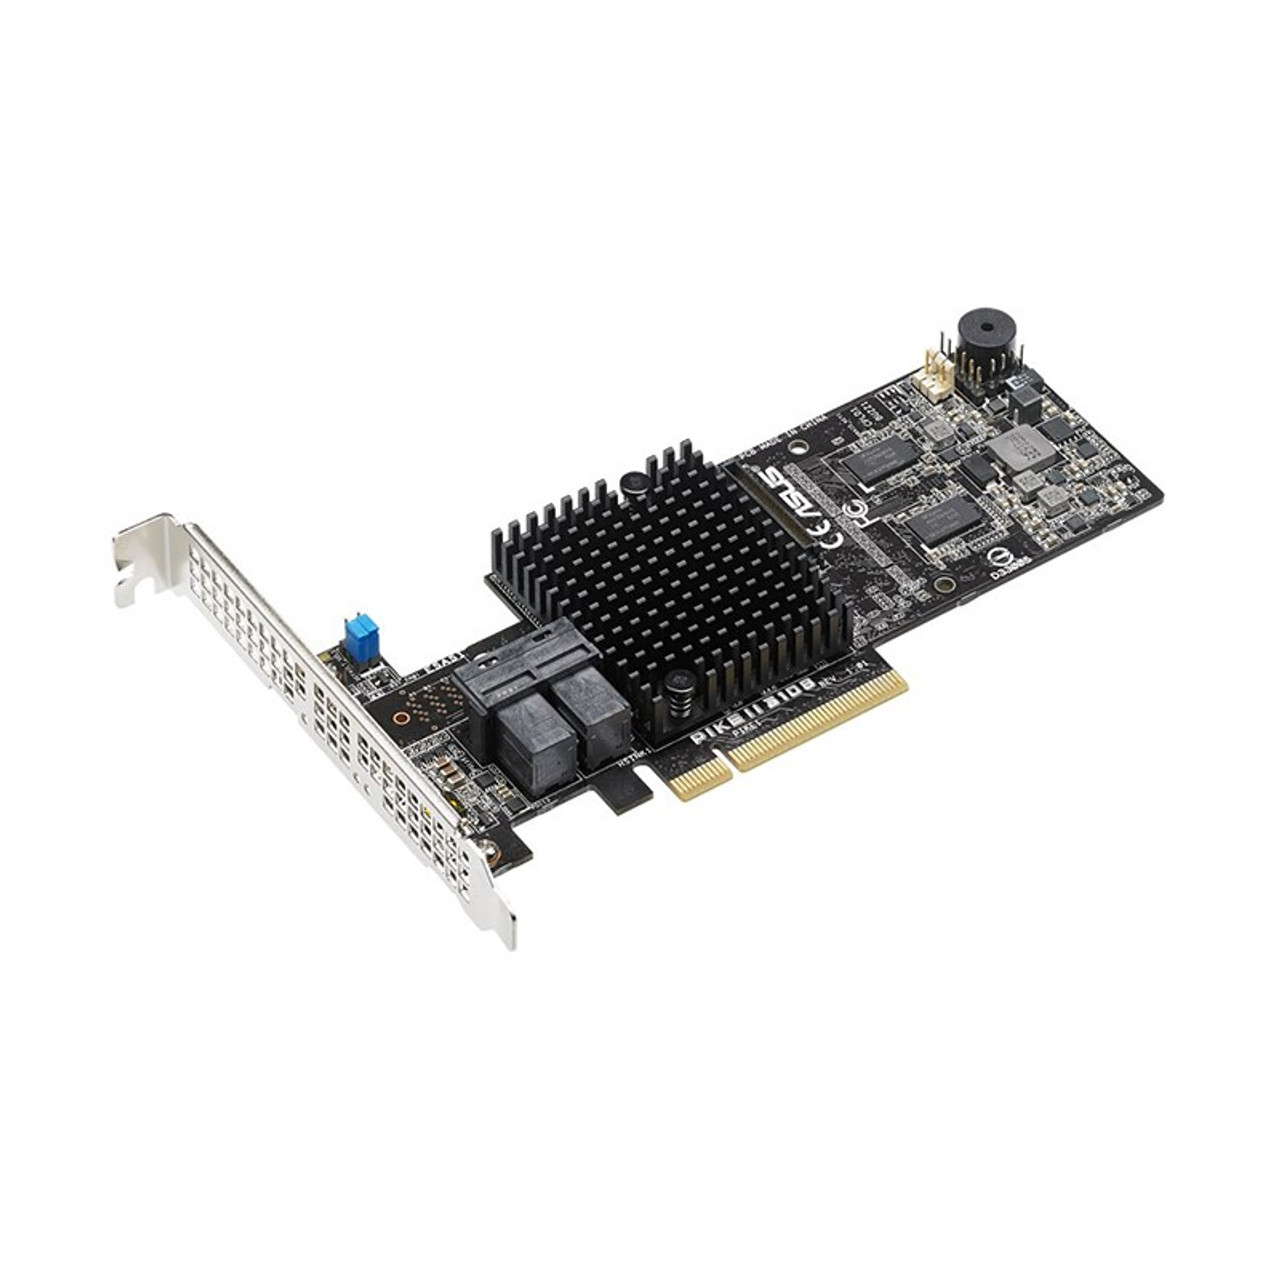 Product image for Asus PIKE II 3108-8i/16PD 8-Port SAS 12Gbps RAID Card Controller | CX Computer Superstore